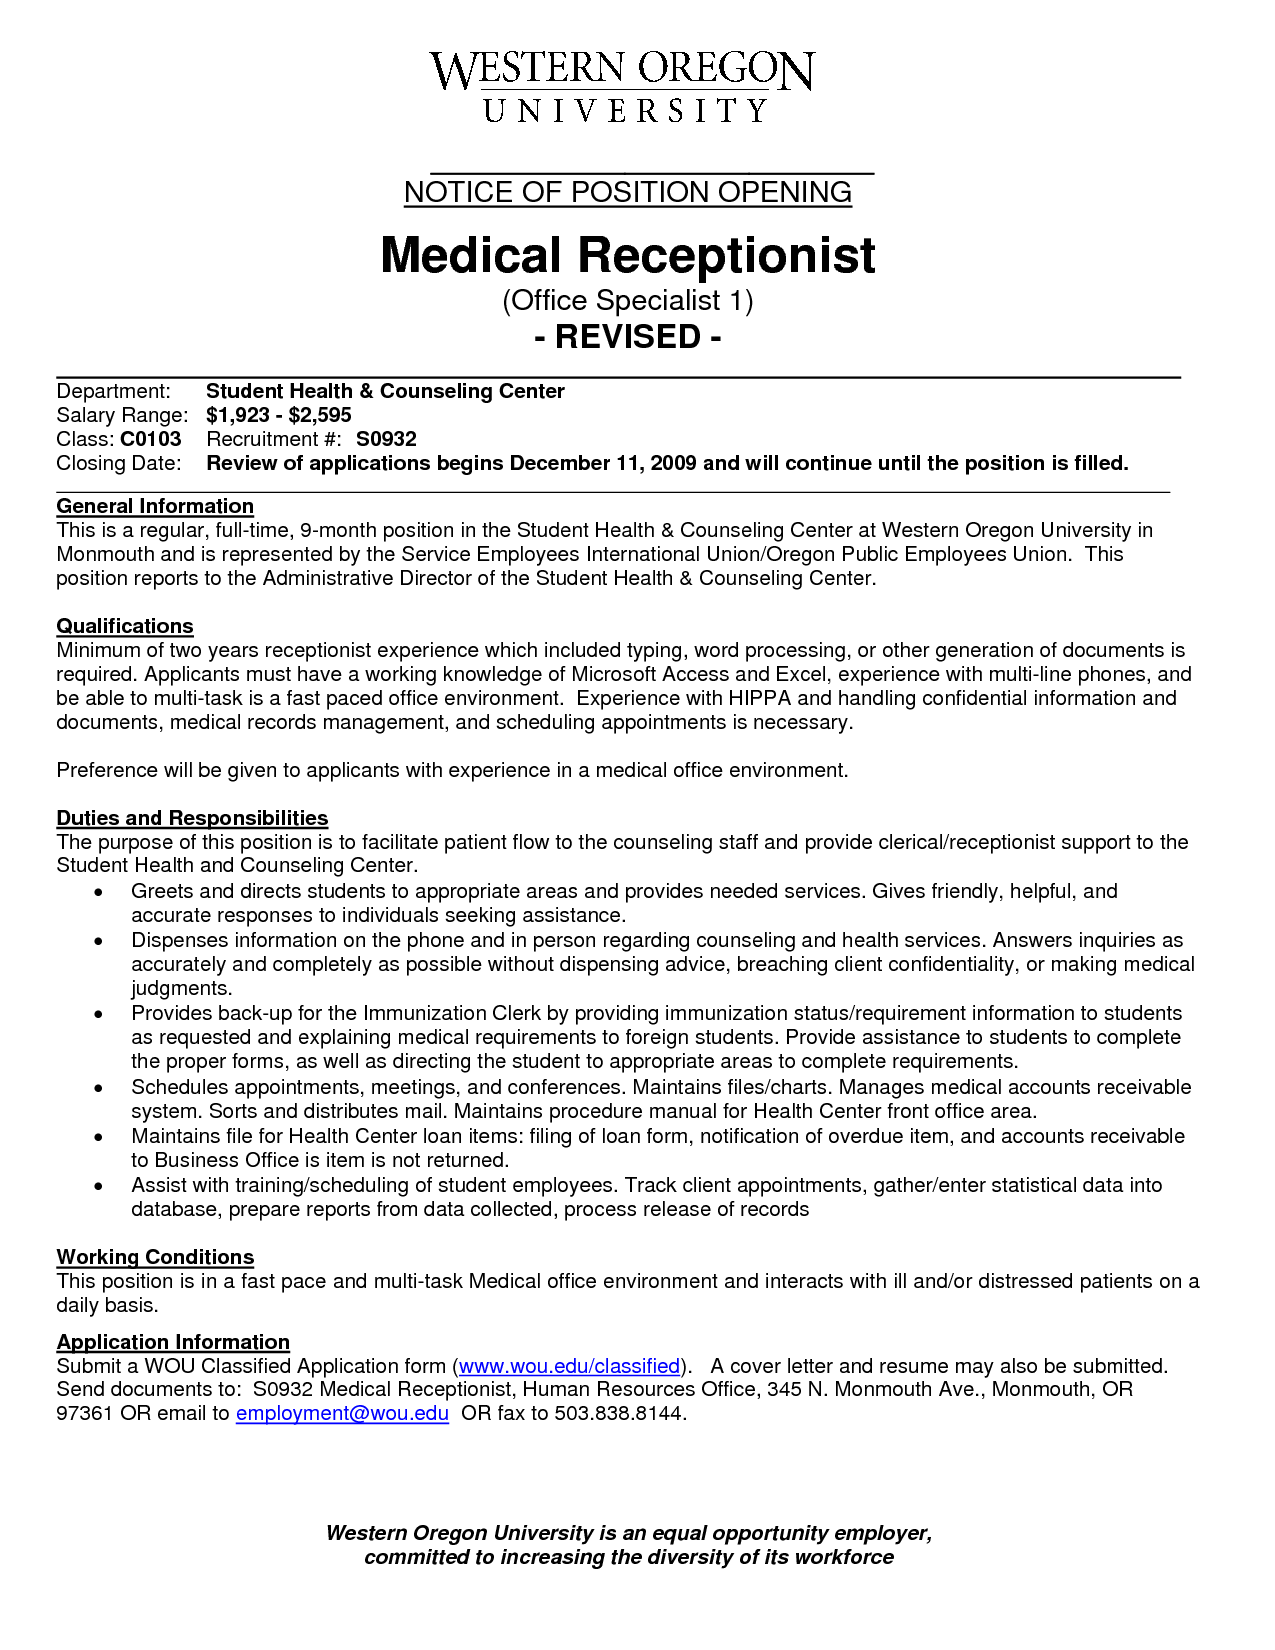 Medical Receptionist Resume With No Experience  HttpWww